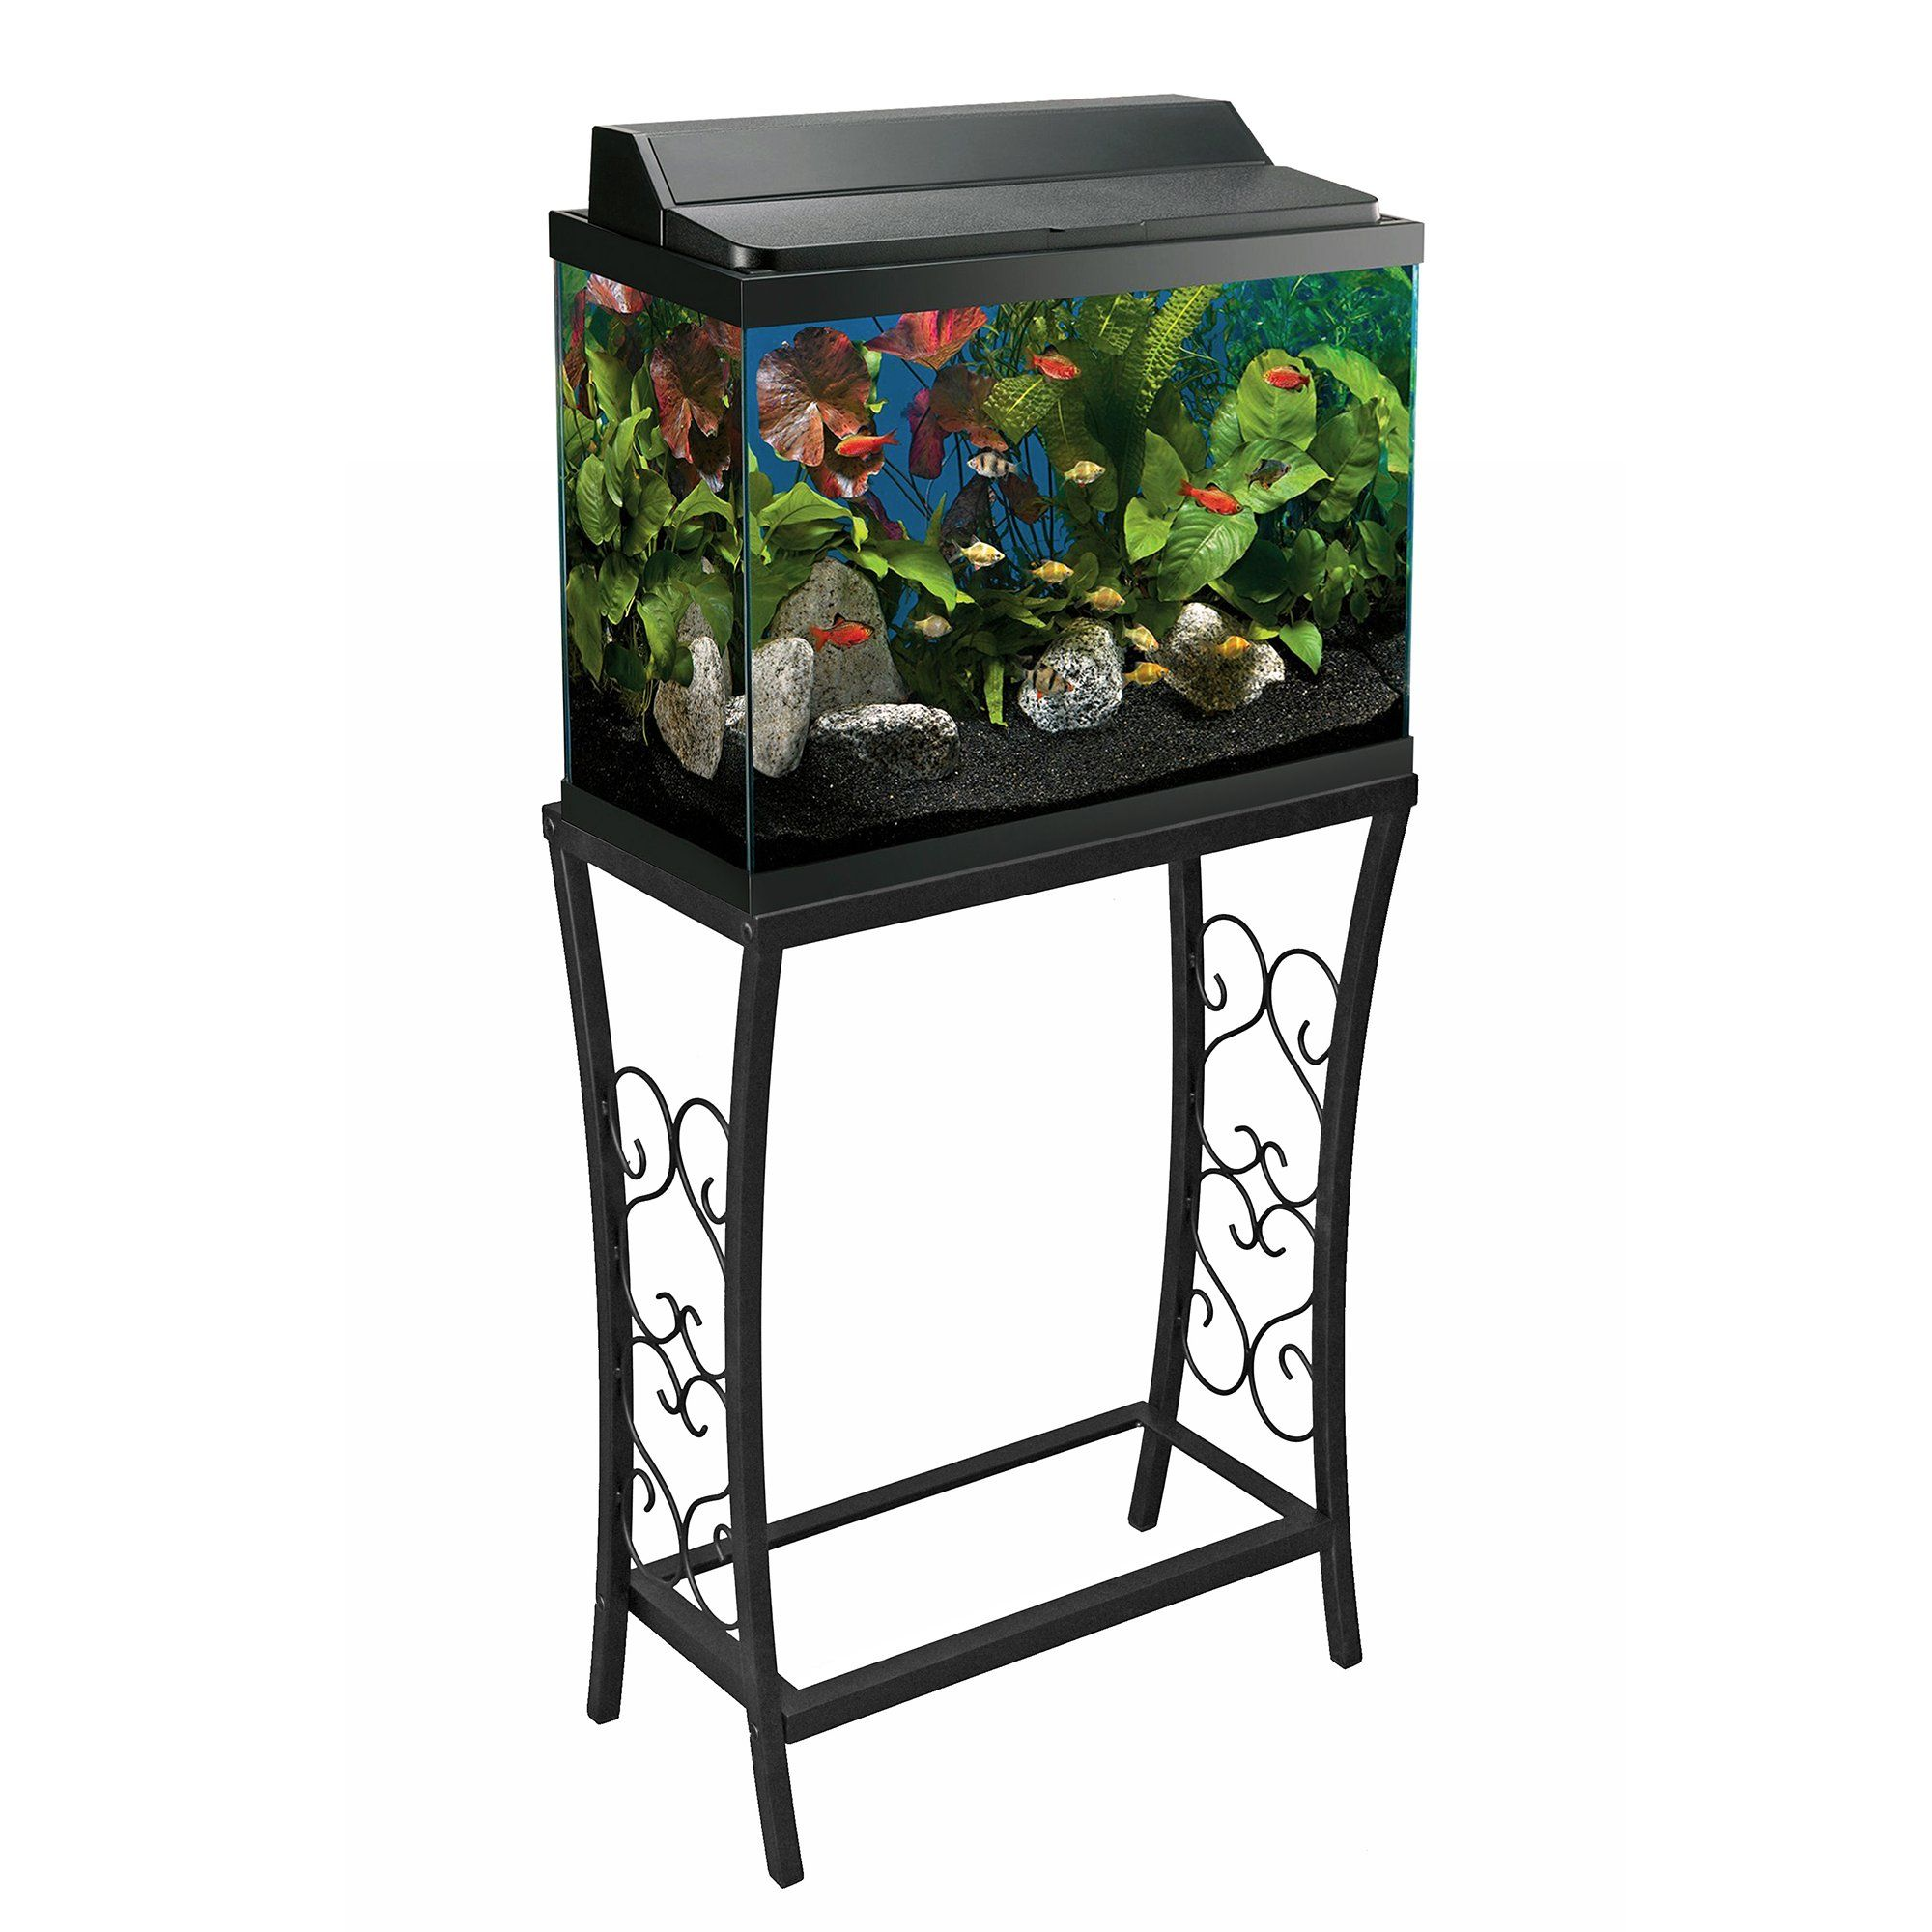 Aquatic Fundamentals Black Scroll Aquarium Stand for 10